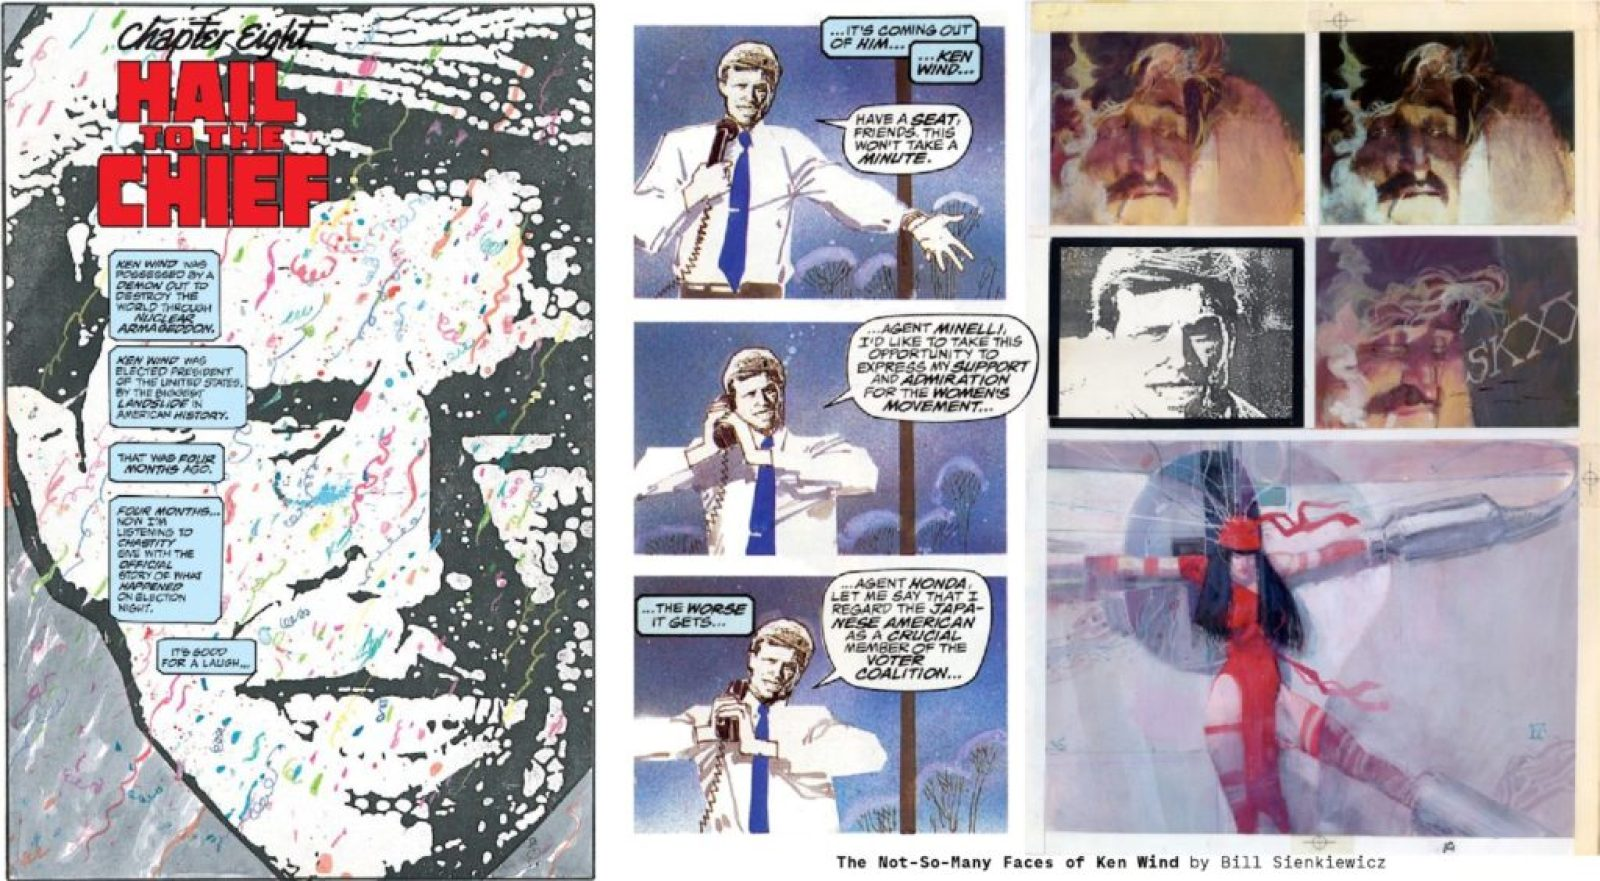 Politicians by Frank Miller and Bill Sienkiewicz